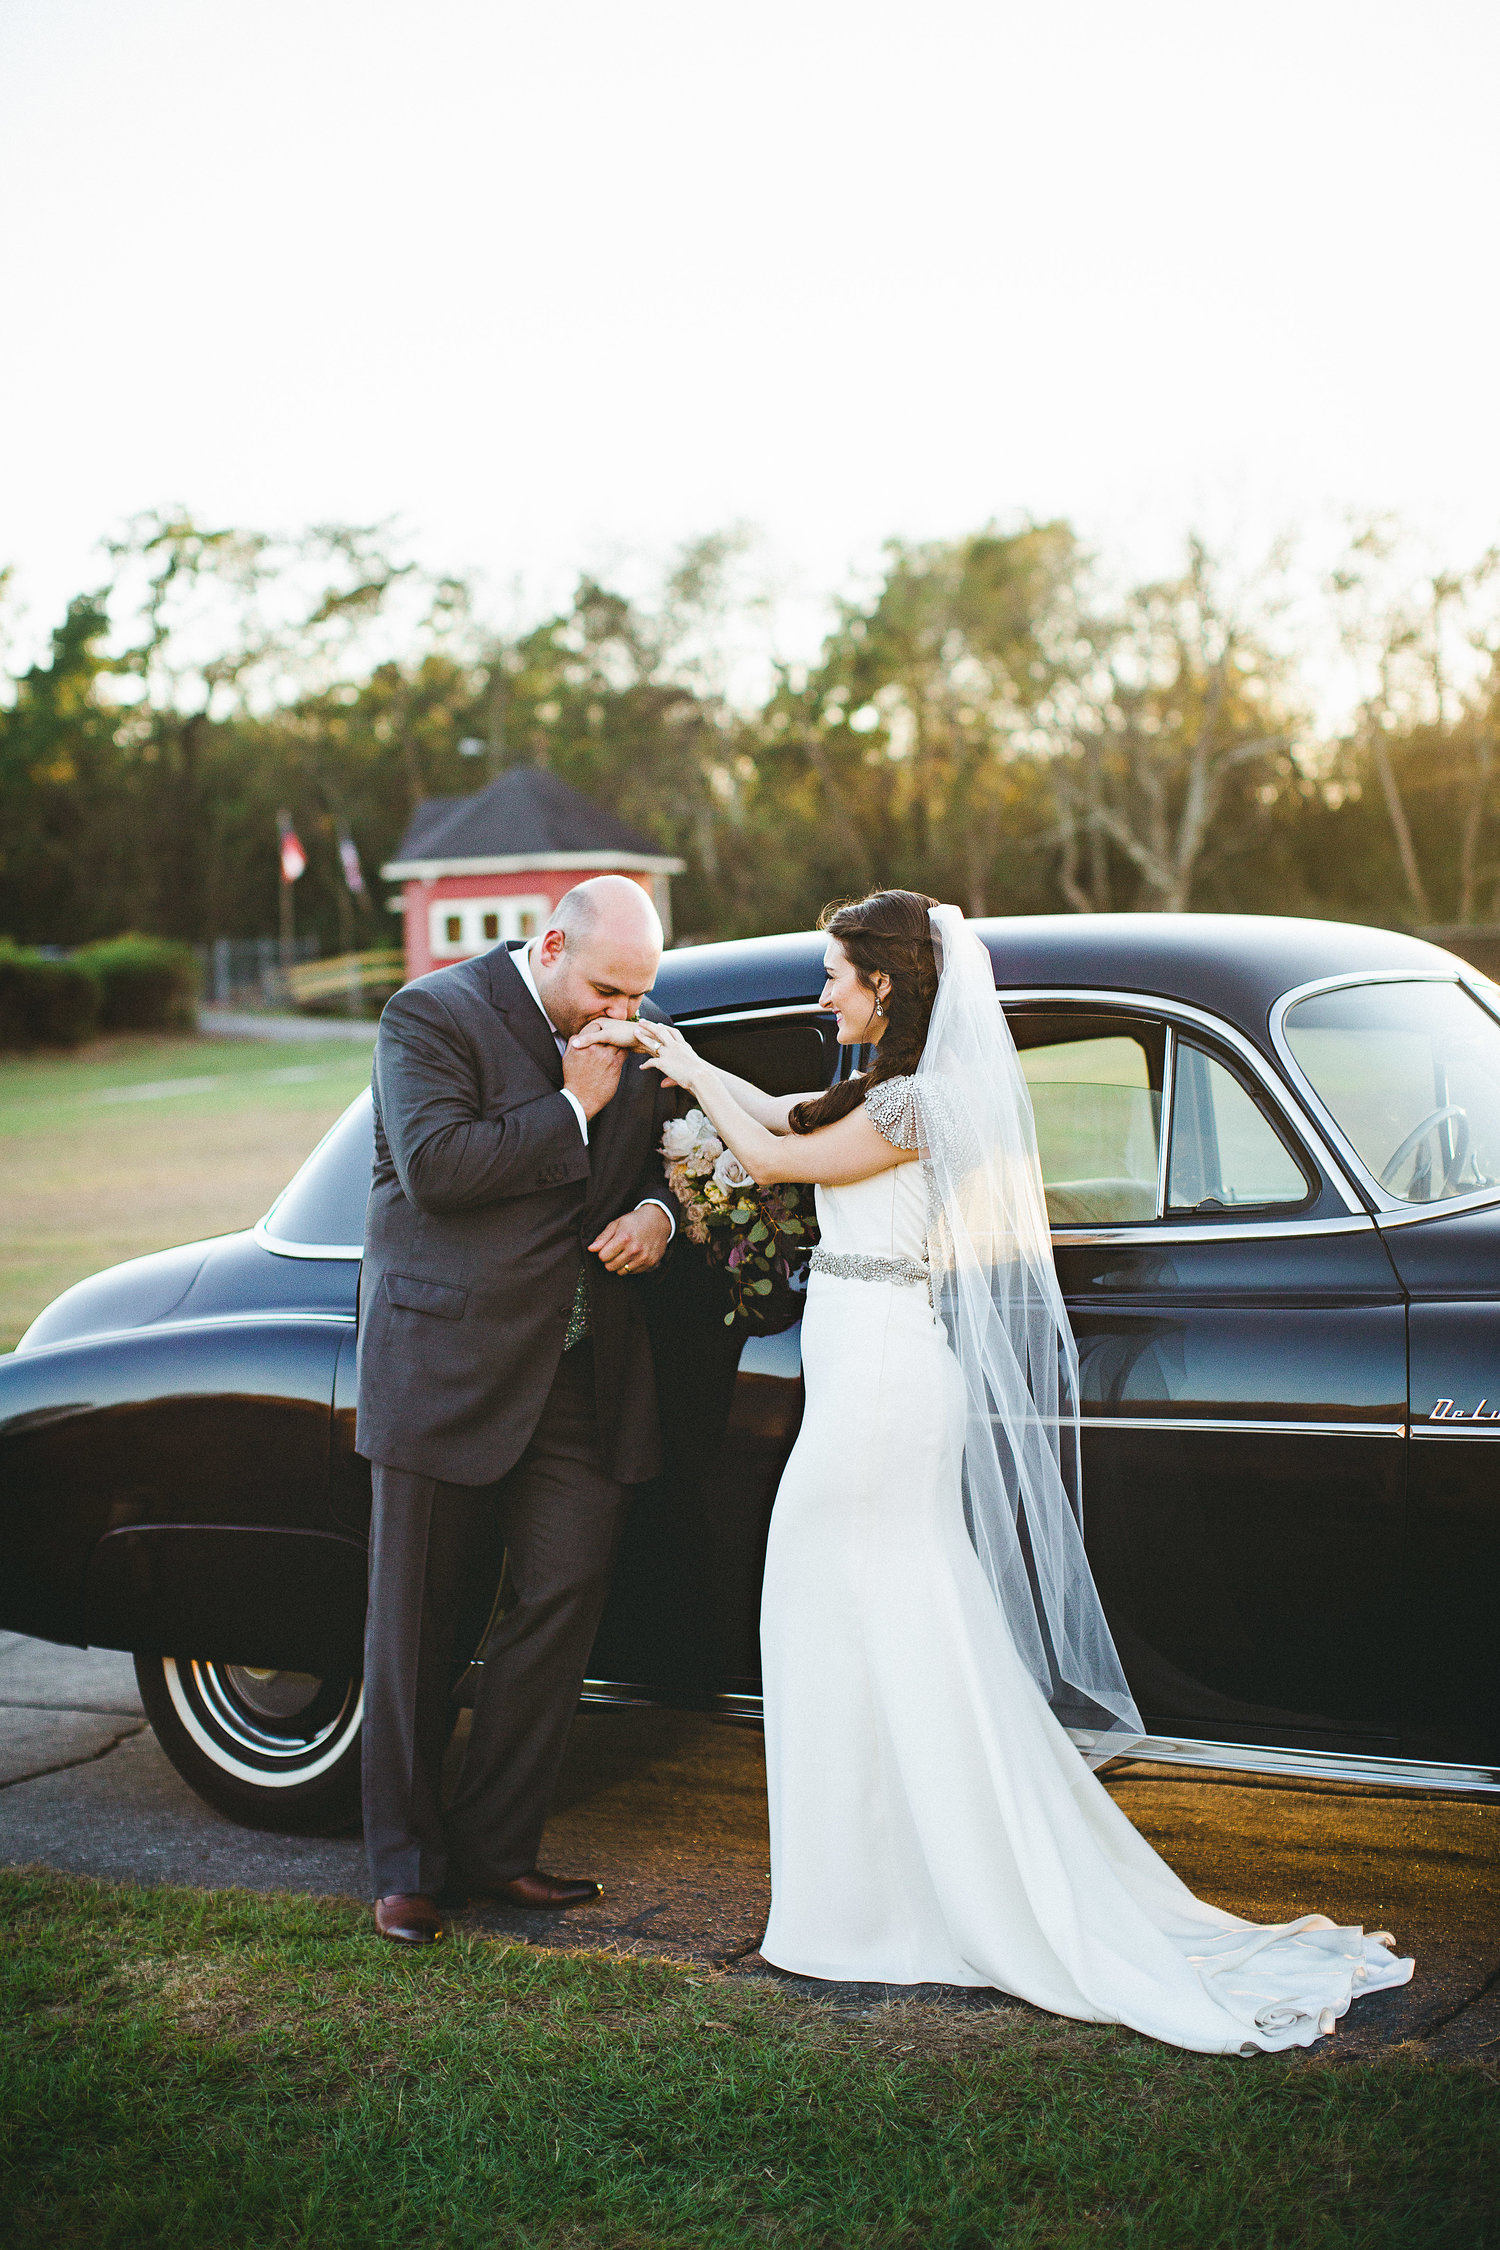 izzy-hudgins-photography-savannah-wedding-ivory-and-beau-bridal-boutique-savannah-wedding-planner-colonial-house-of-flowers-forsyth-park-wedding-old-fort-jackson-wedding-squidwed-films-savannah-boutique-savannah-weddings-54.jpg